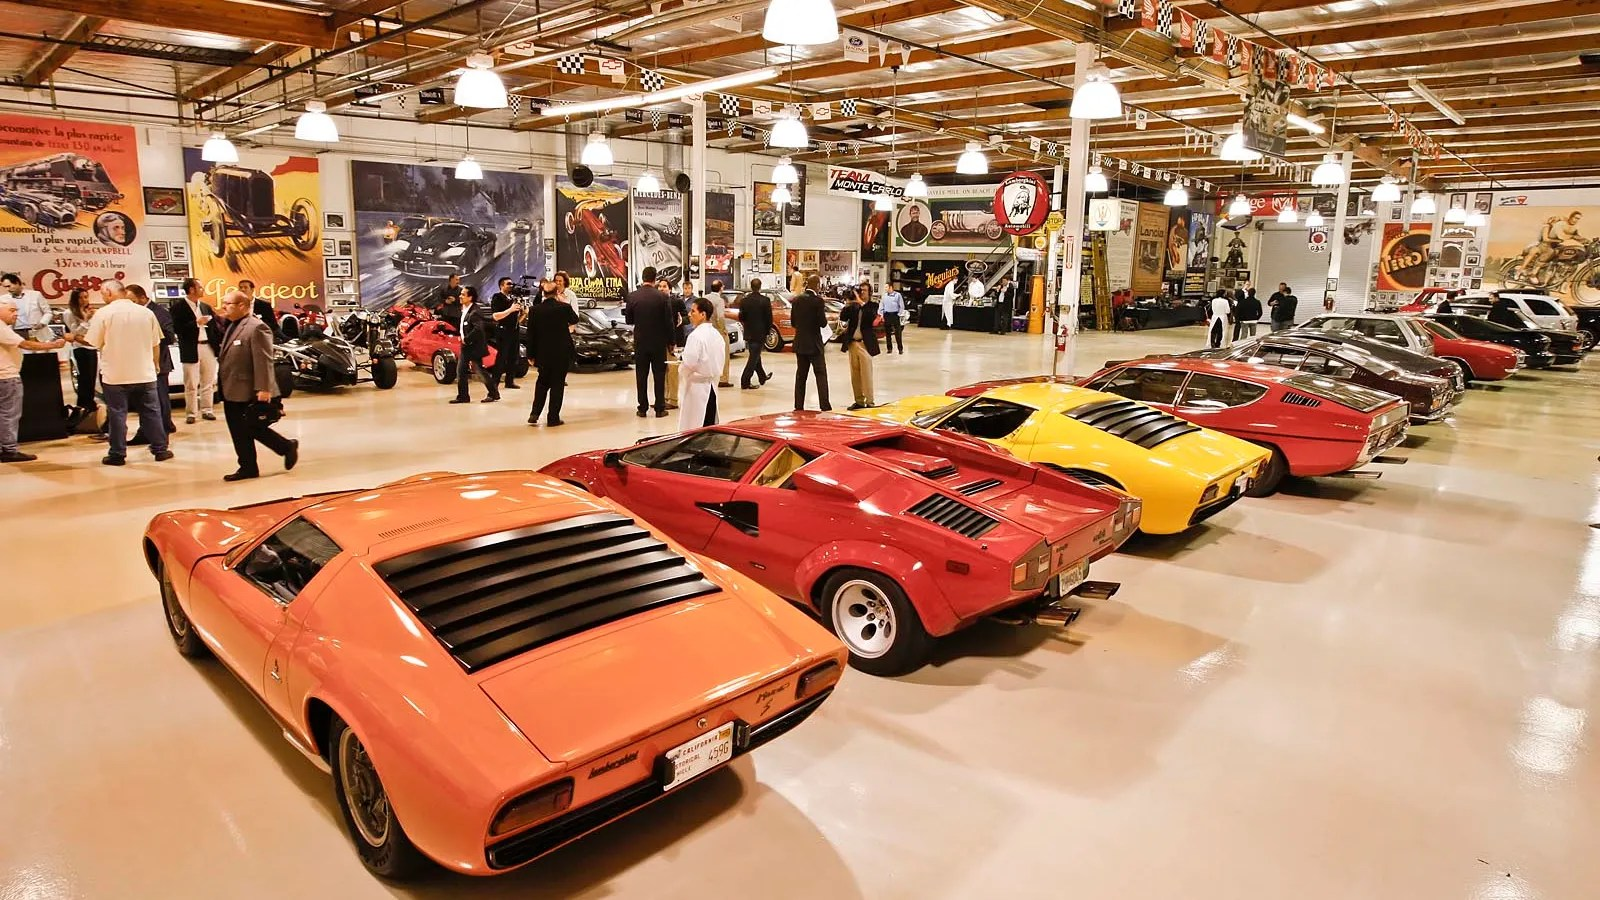 Garage Automobile Tours Burbank Envy A Glimpse Inside Jay Leno S Garage